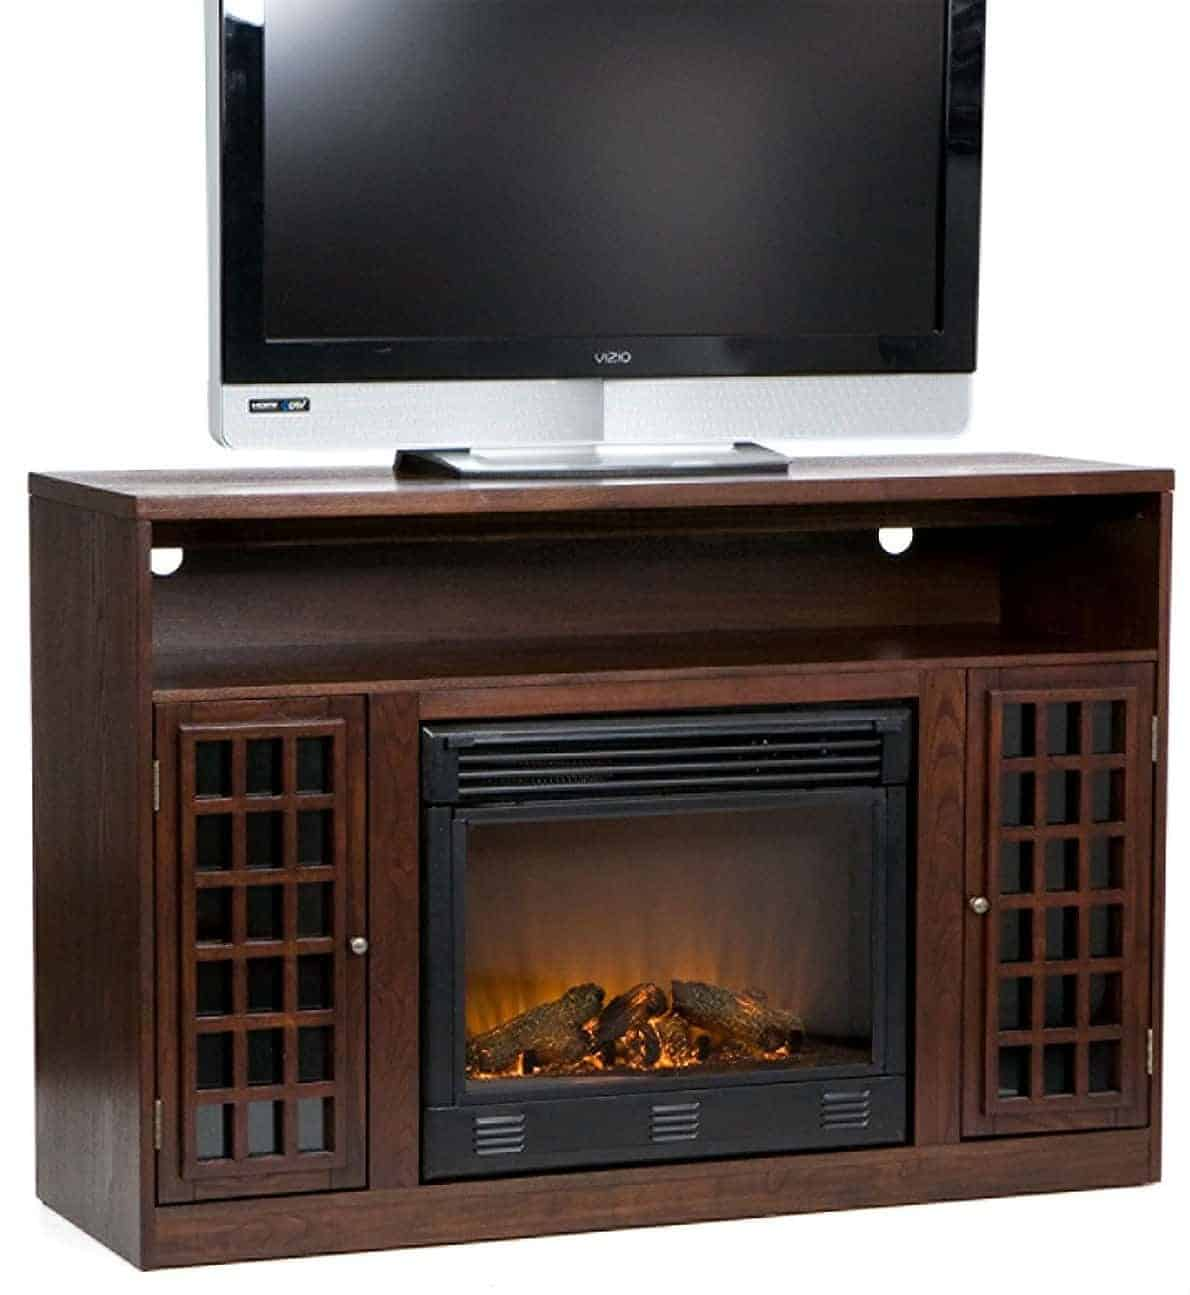 Southern Enterprises Narita Media Electric Fireplace - Espresso